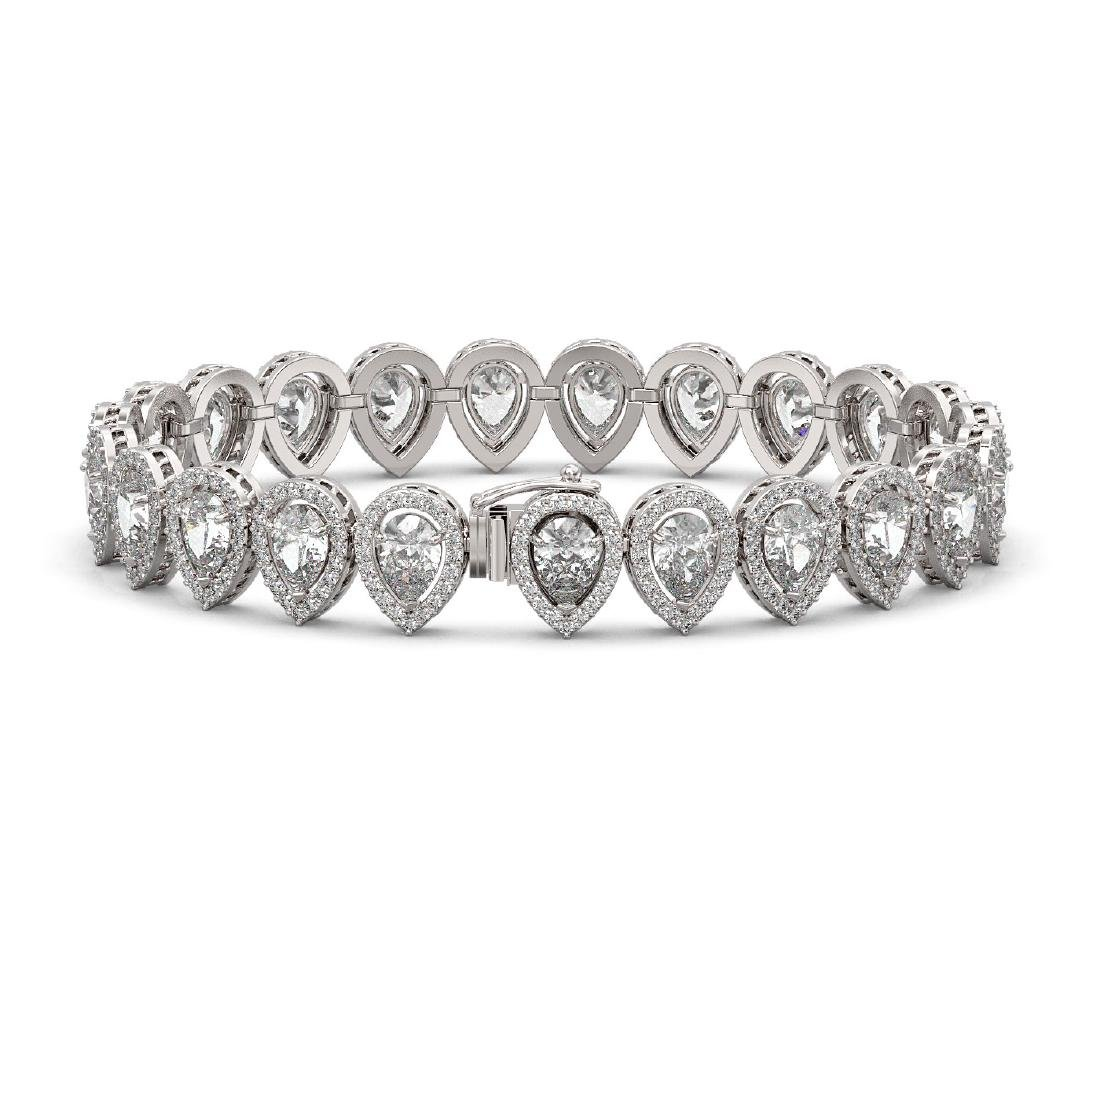 15.85 CTW Pear Diamond Designer Bracelet 18K White Gold - 2